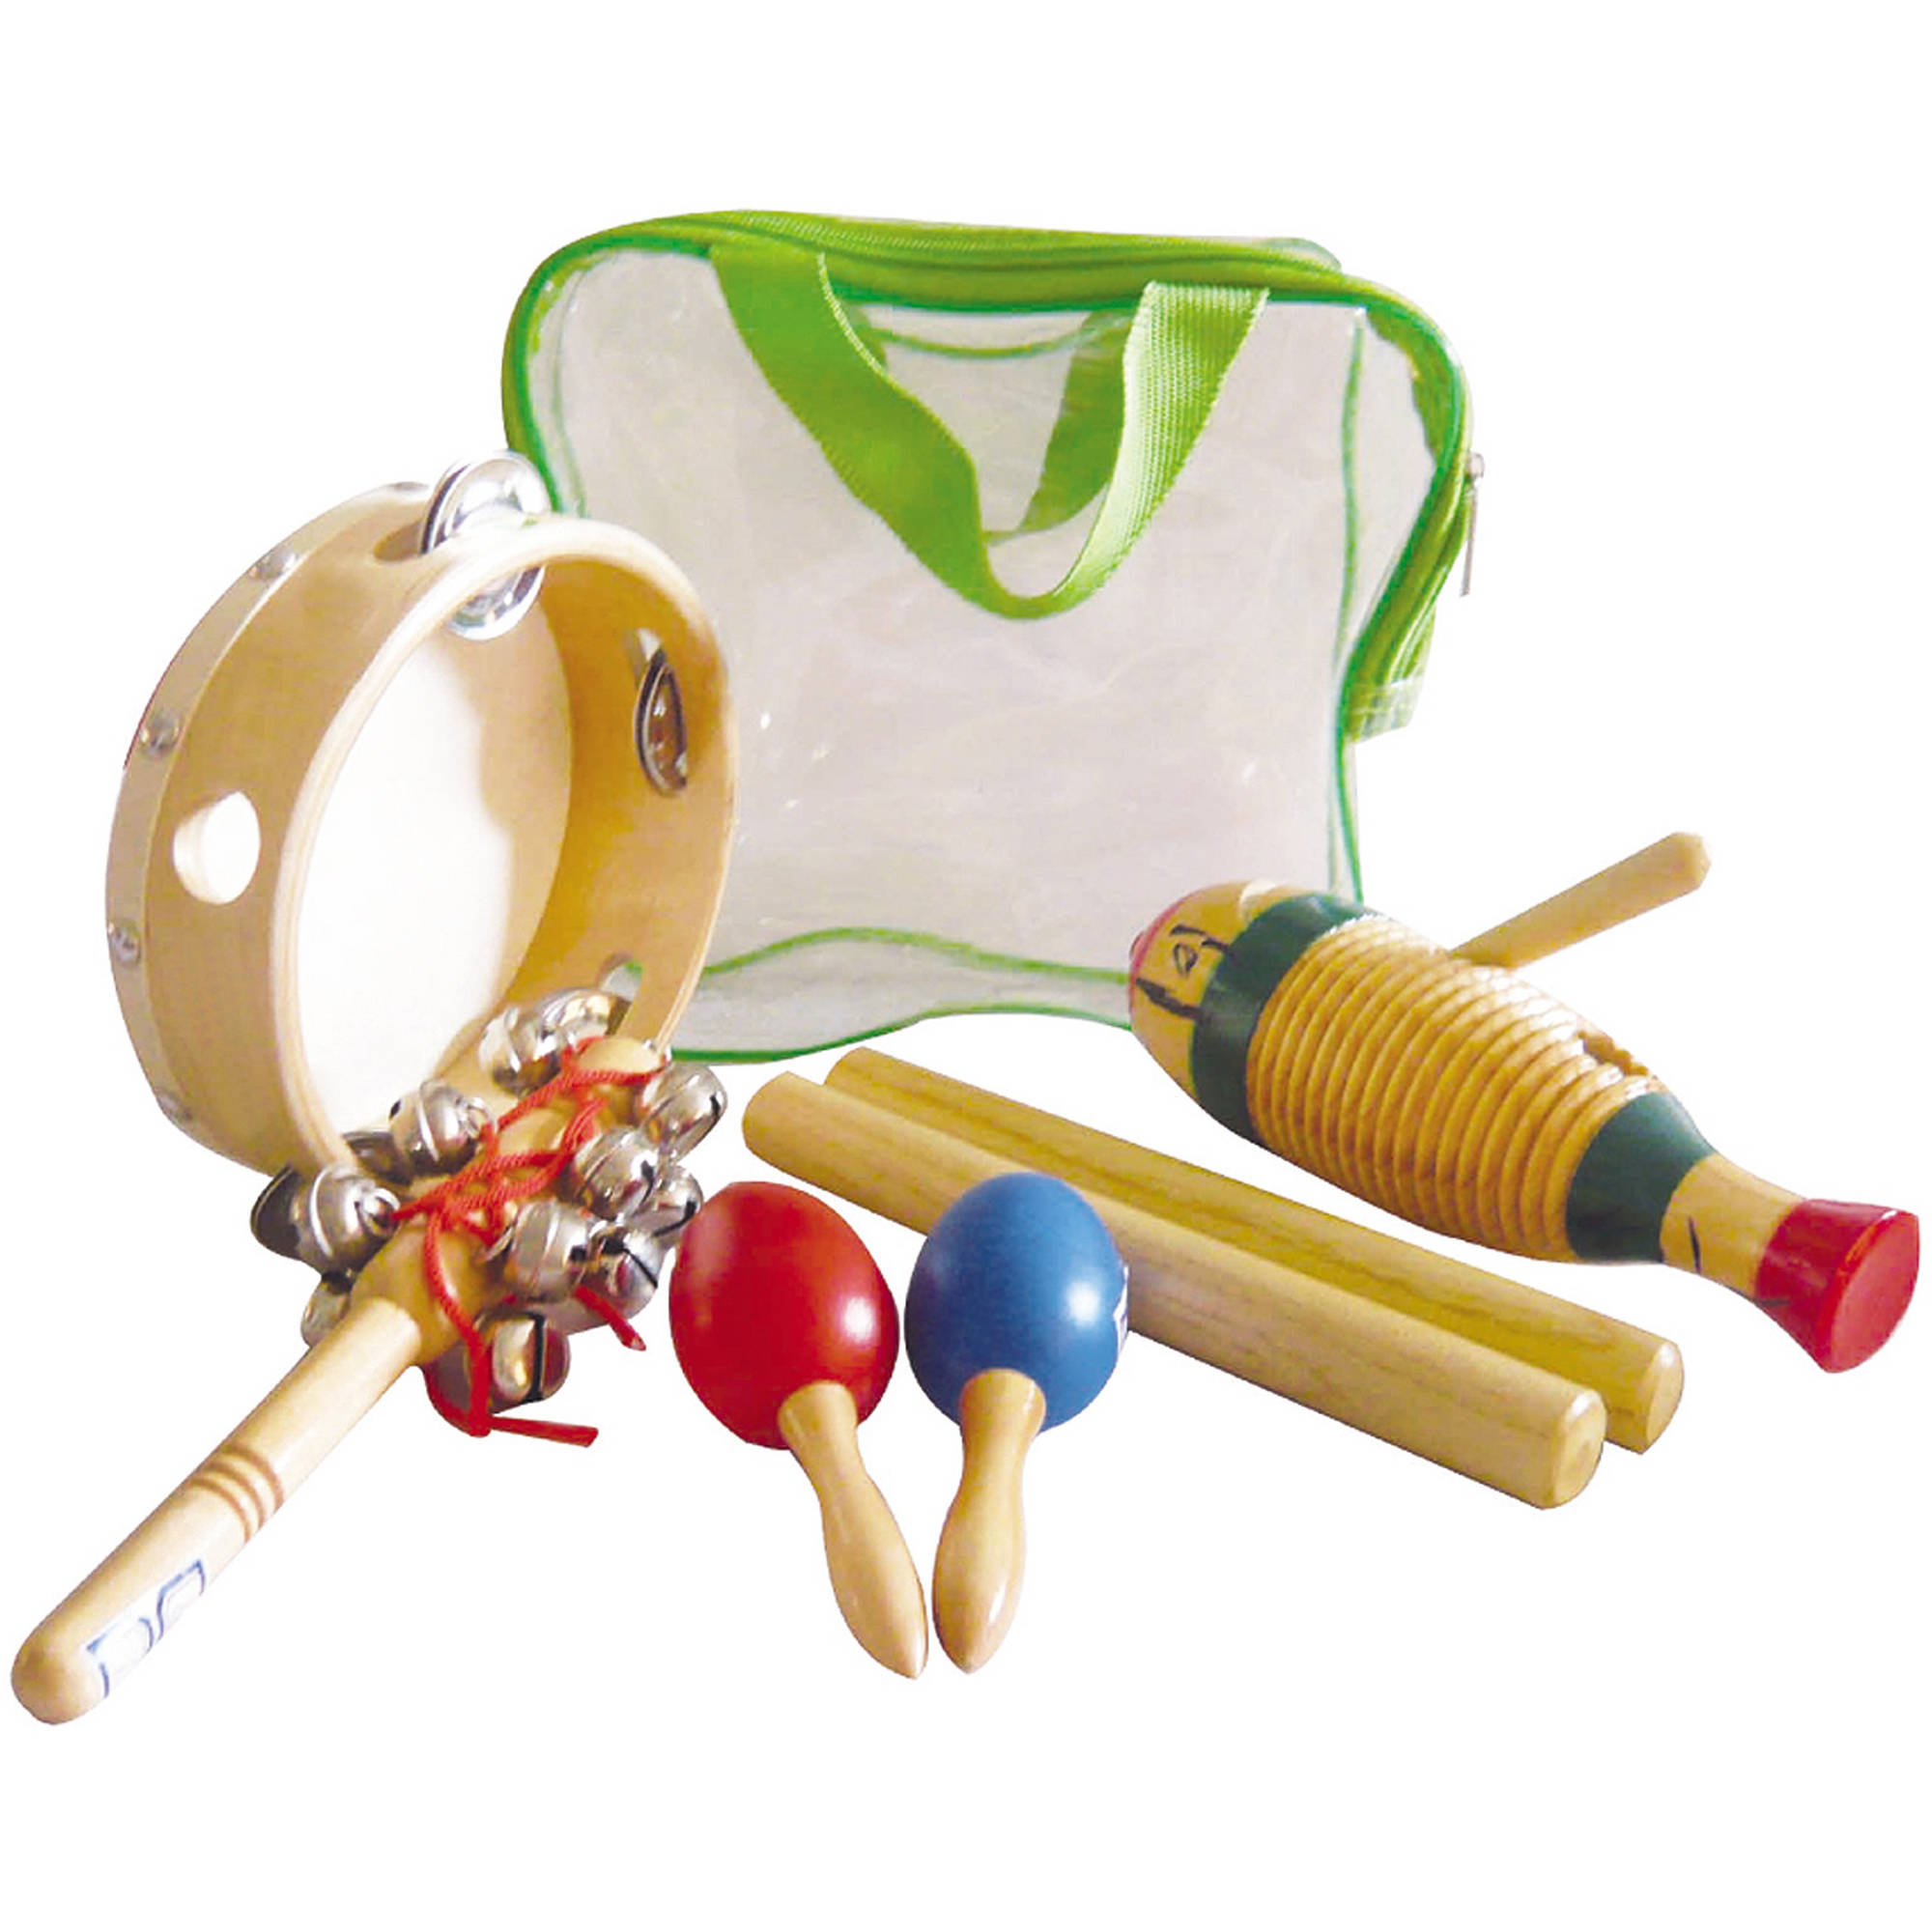 GP Percussion GPPK5G 5-Piece Percussion Pack with Bag